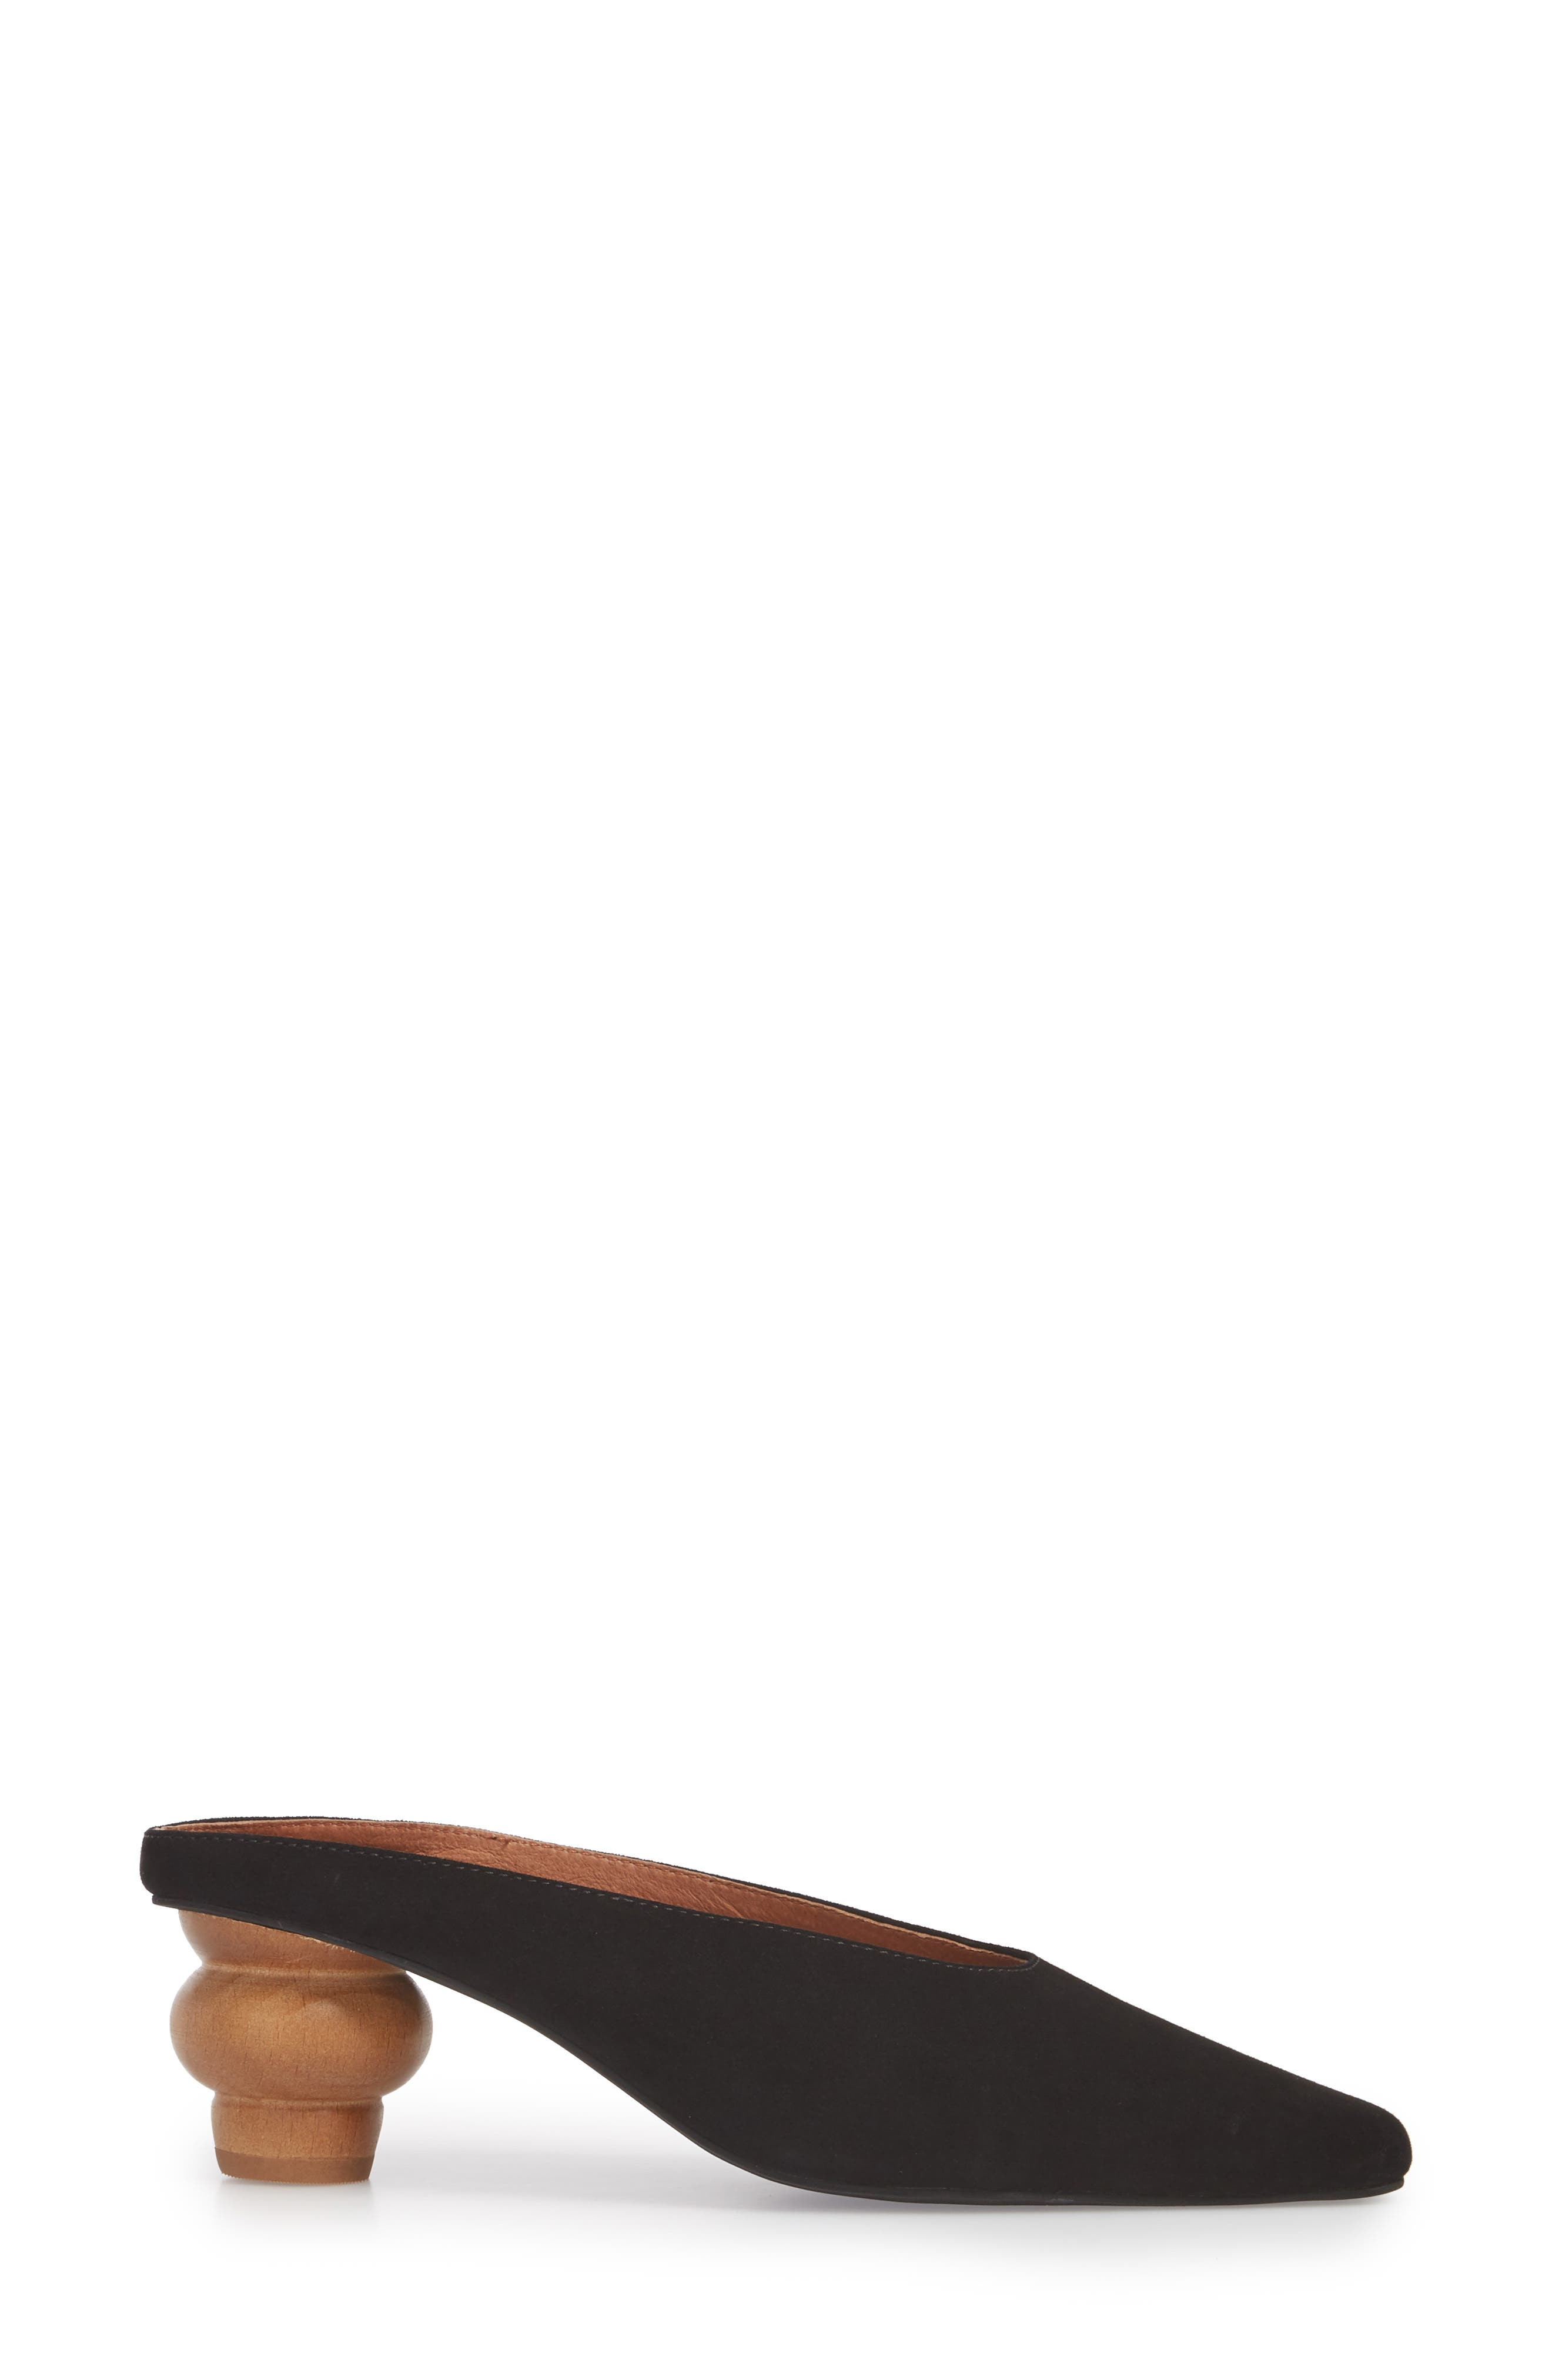 JEFFREY CAMPBELL,                             Cryptic Statement Heel Mule,                             Alternate thumbnail 3, color,                             005